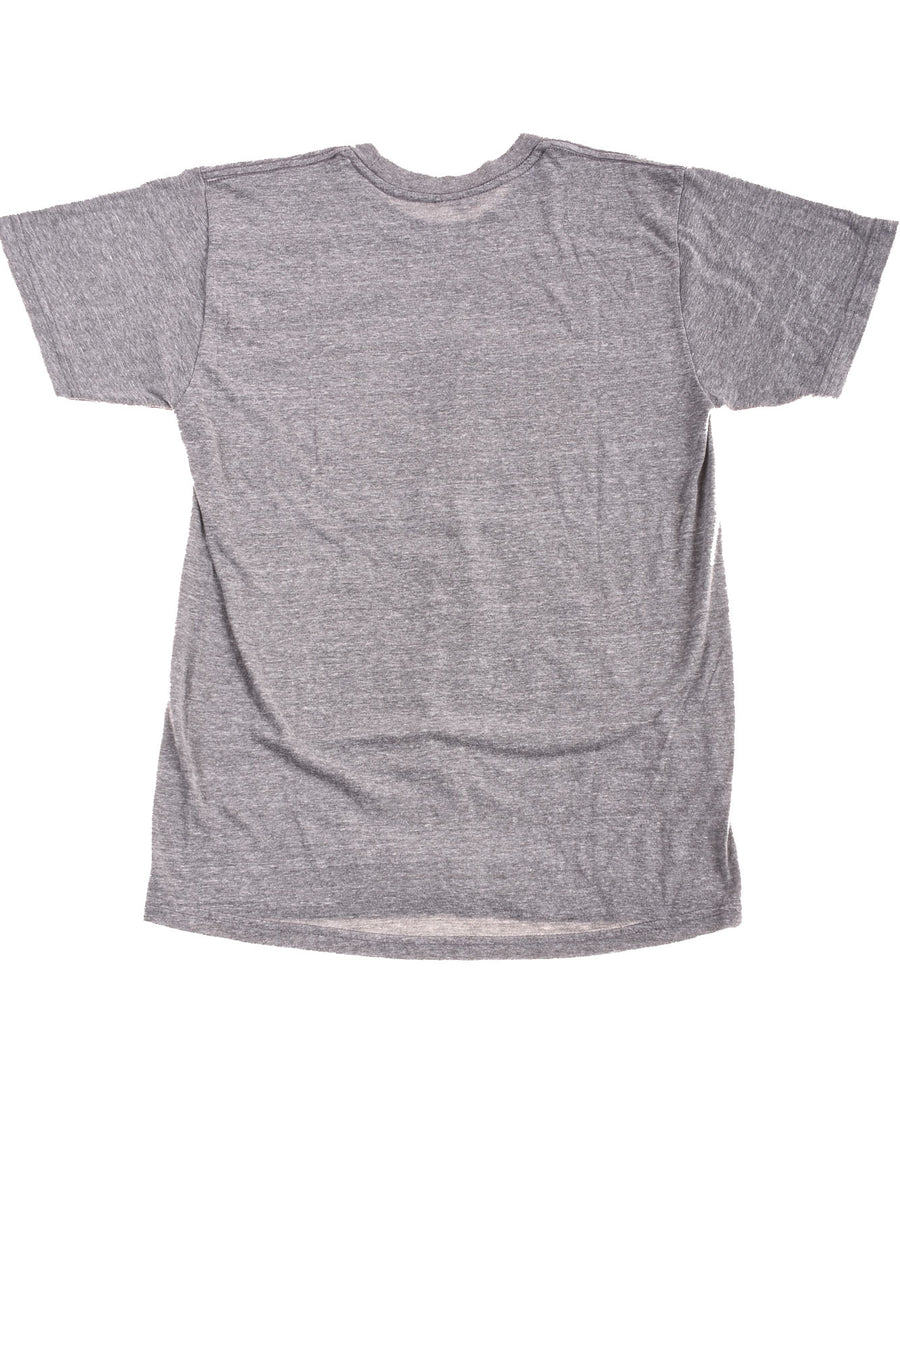 USED Fantasy Active Wear Men's Shirt Small Gray